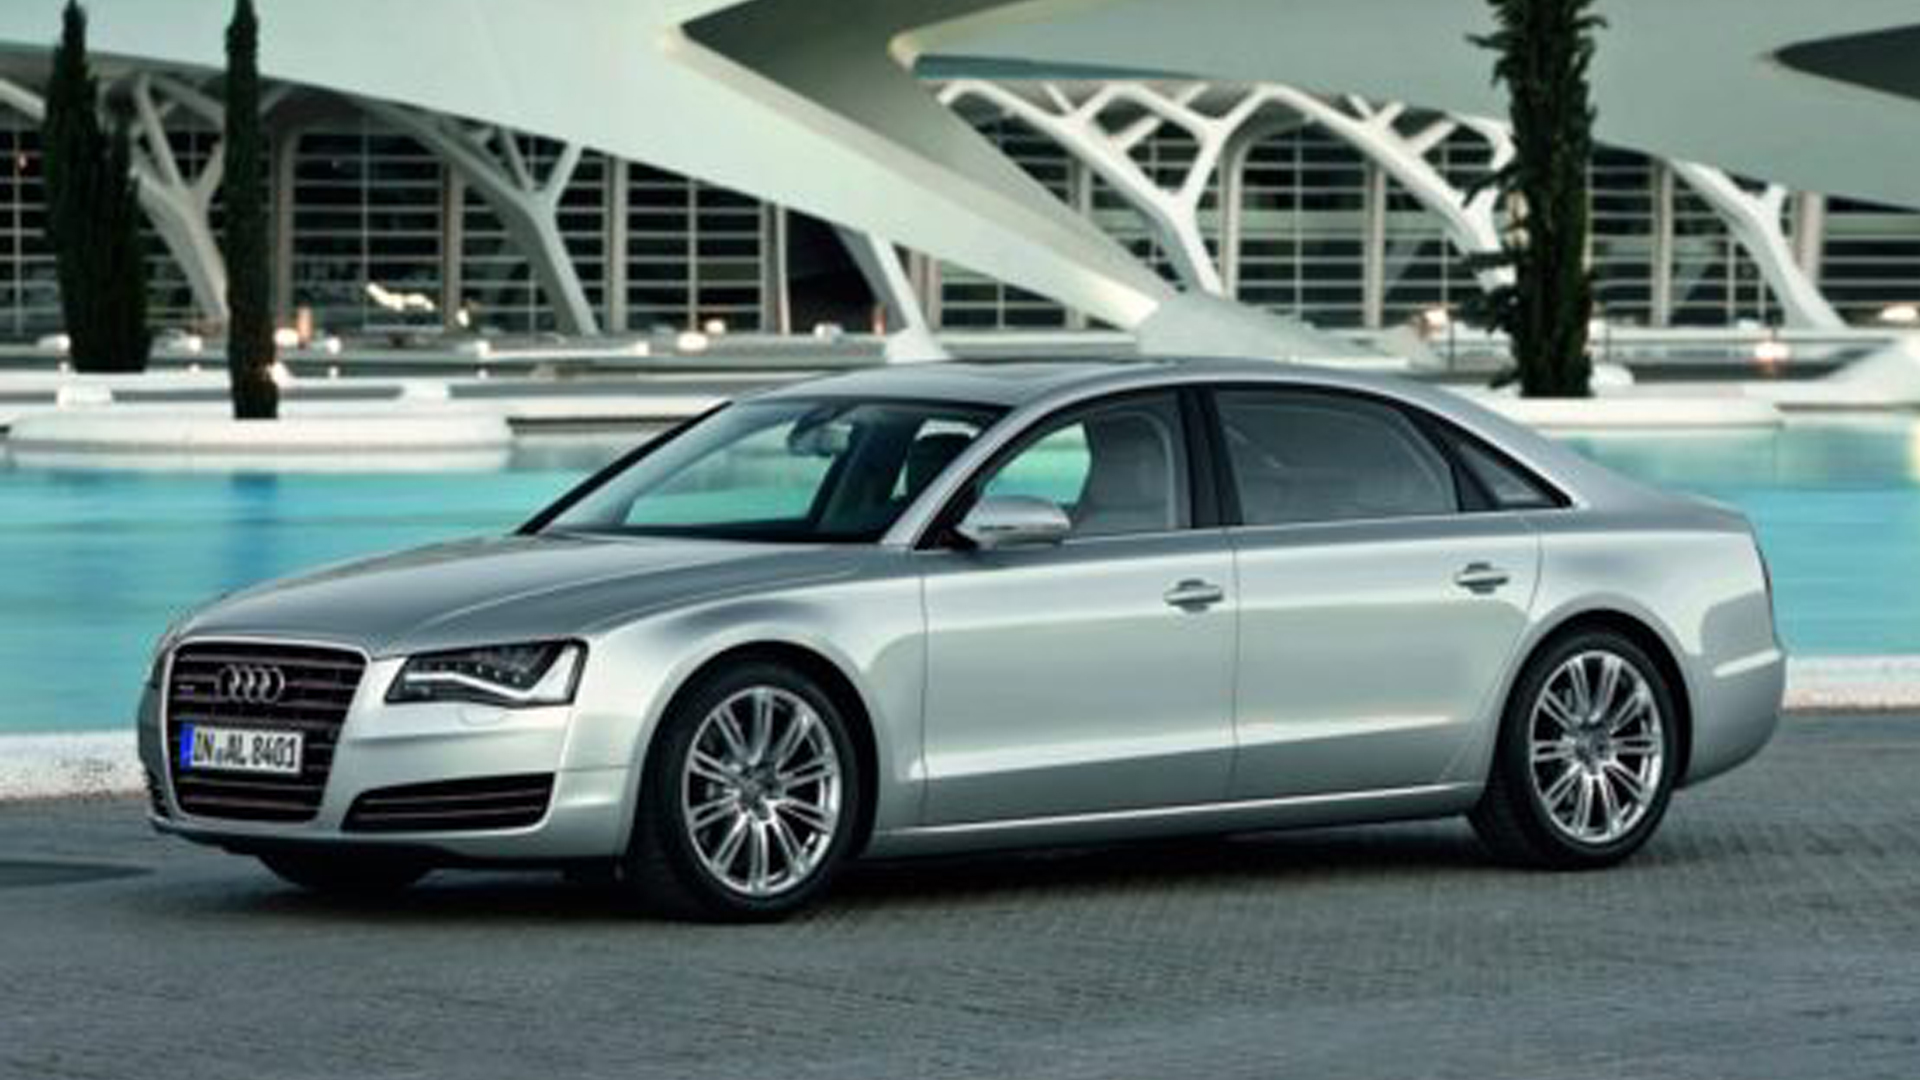 2013 Audi A8  (Photo 4 of 6)